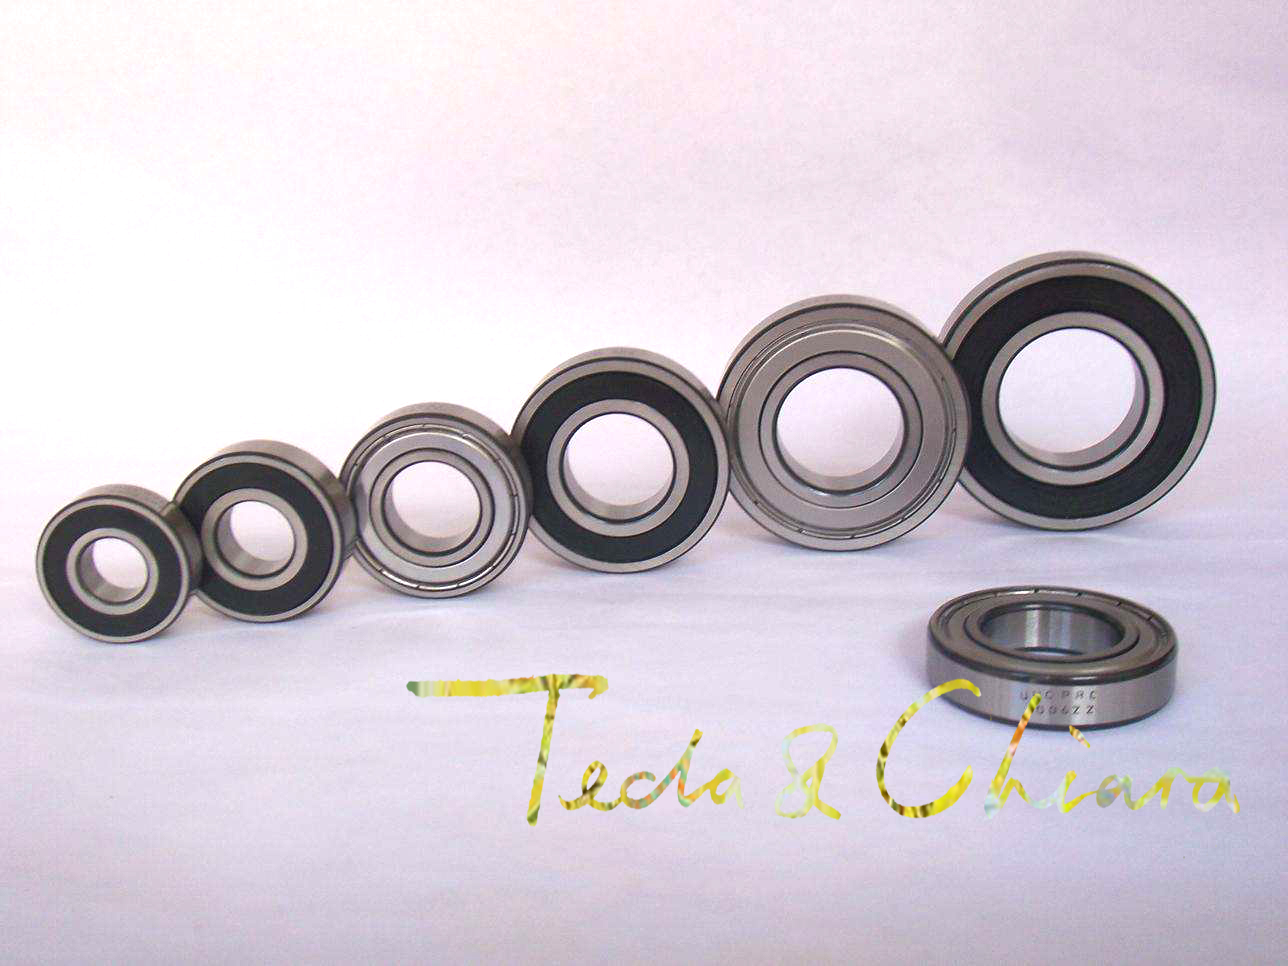 604 604ZZ 604RS 604-2Z 604Z 604-2RS ZZ RS RZ 2RZ Deep Groove Ball Bearings 4 x 12 x 4mm High Quality free shipping 25x47x12mm deep groove ball bearings 6005 zz 2z 6005zz bearing 6005zz 6005 2rs